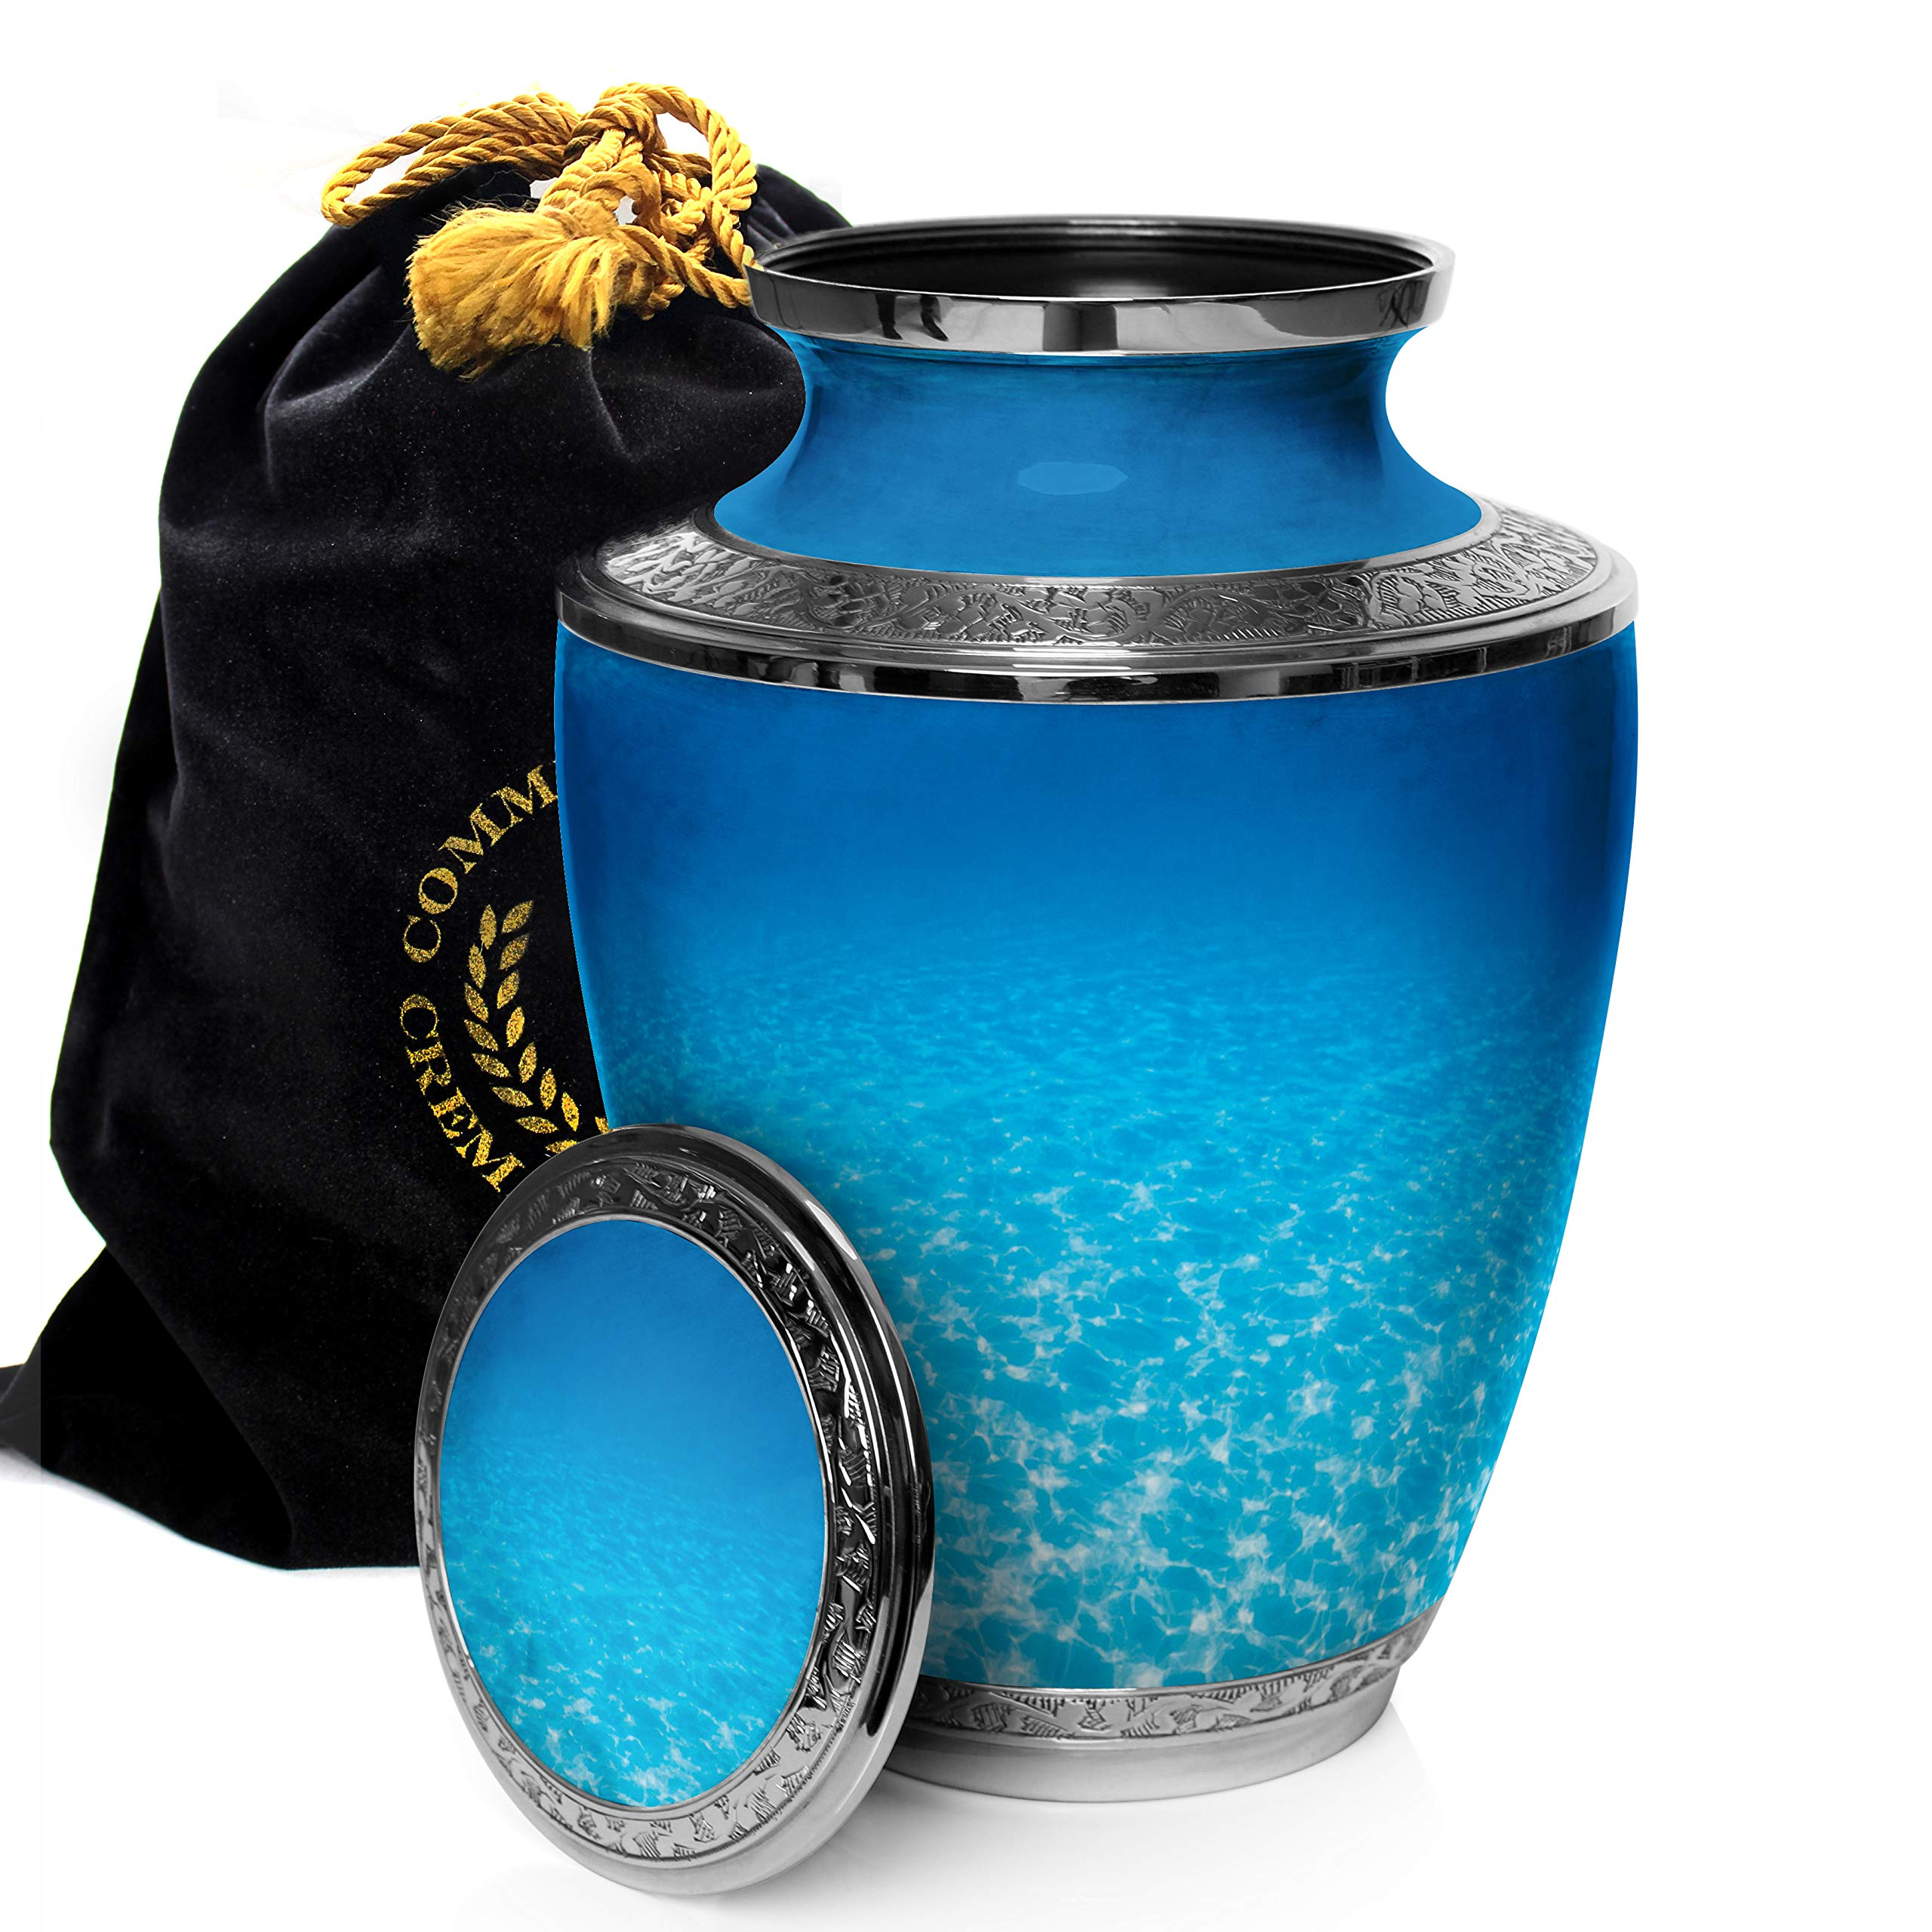 Ocean Tranquility Cremation Urns for Adult Ashes Ideal for Funeral, Burial, Columbarium or Home, Cremation Urns for Human Ashes Adult 200 Cubic Inches Urns for Ashes Large by Commemorative Cremation Urns (Image #3)